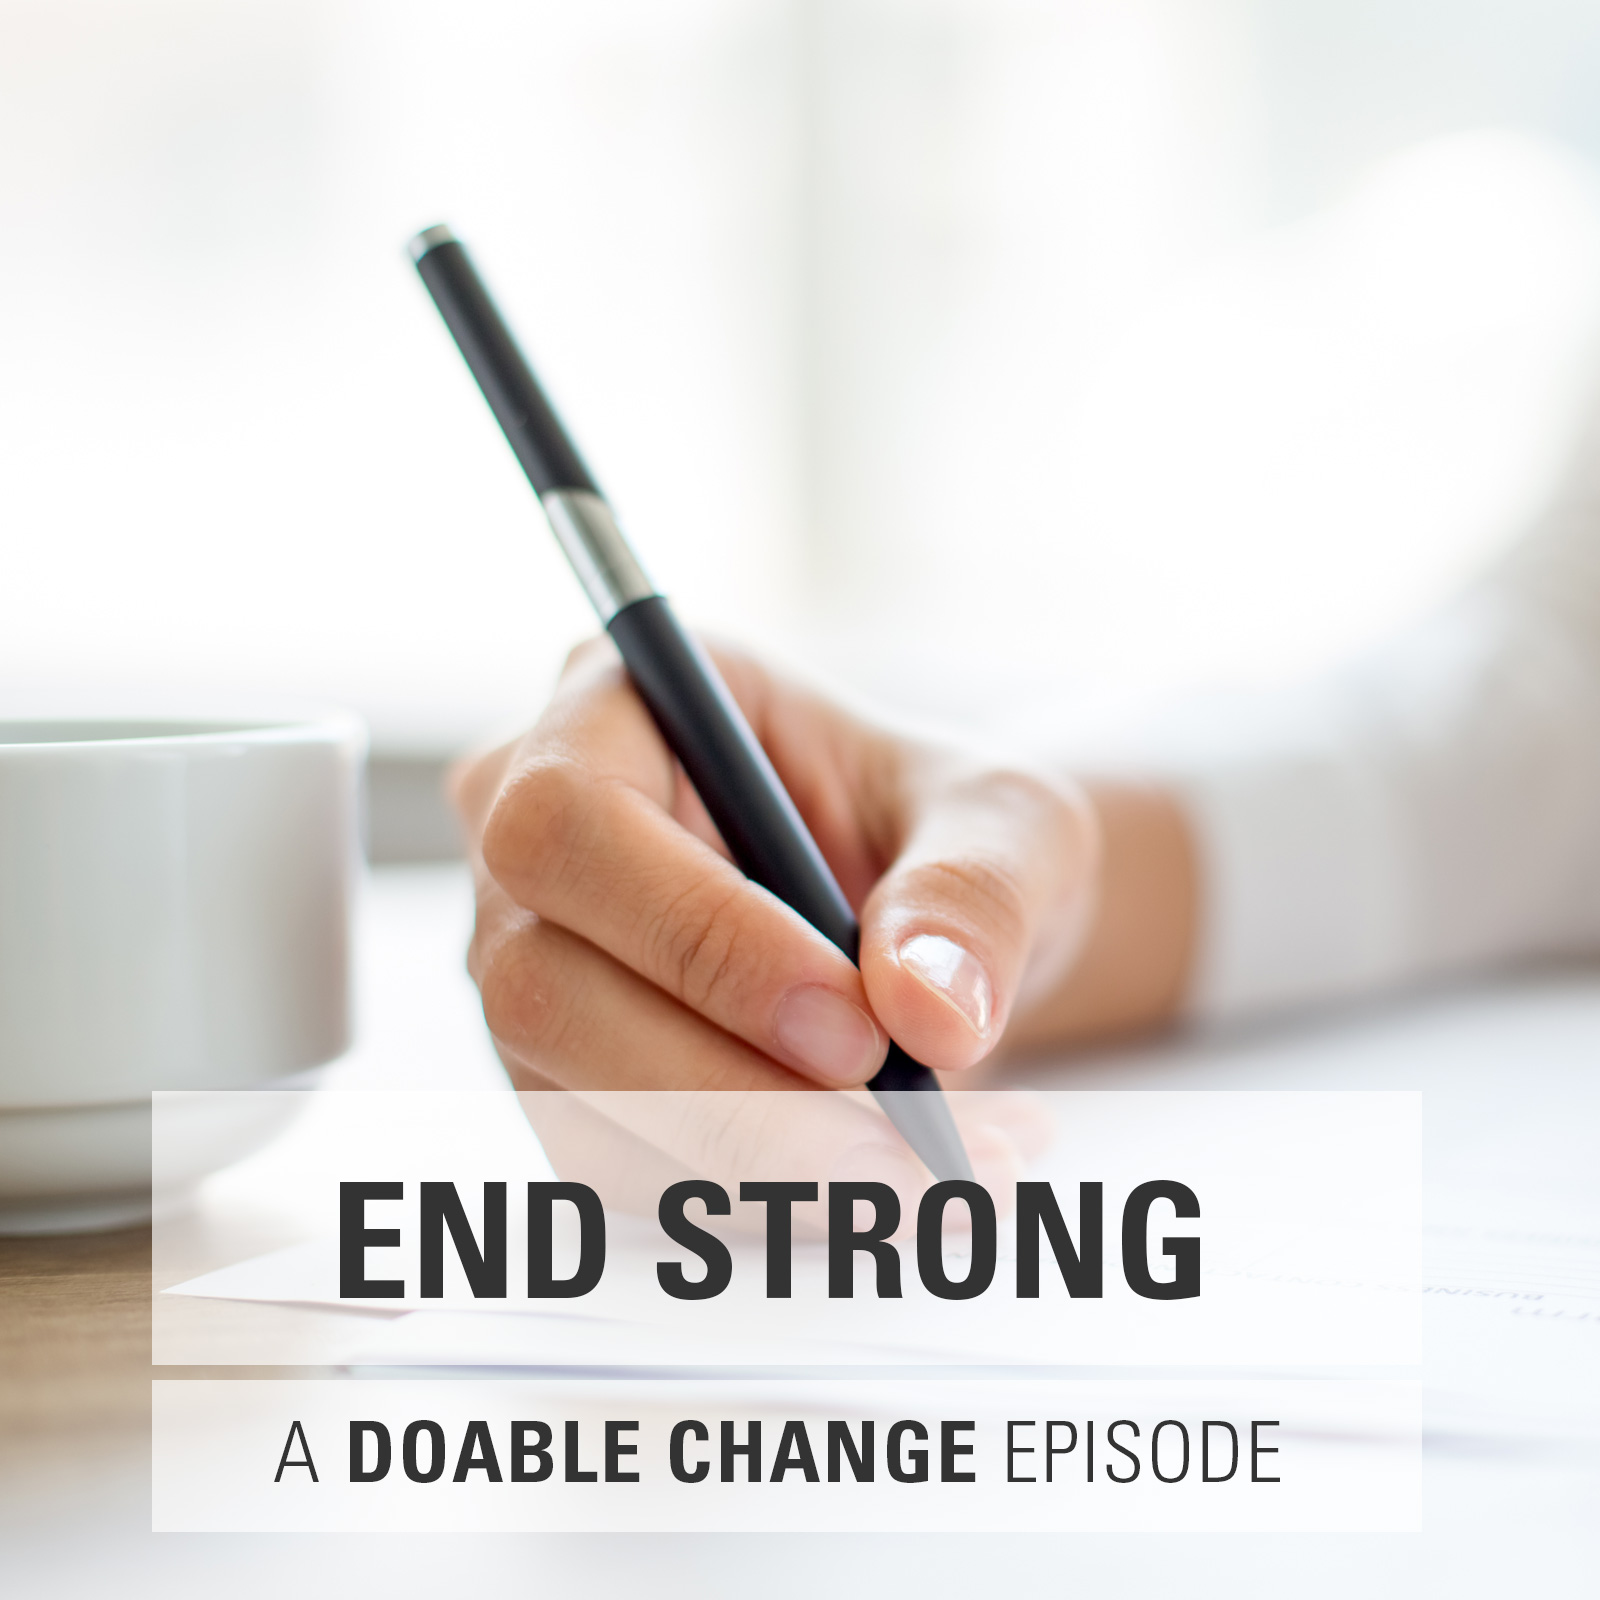 End Strong